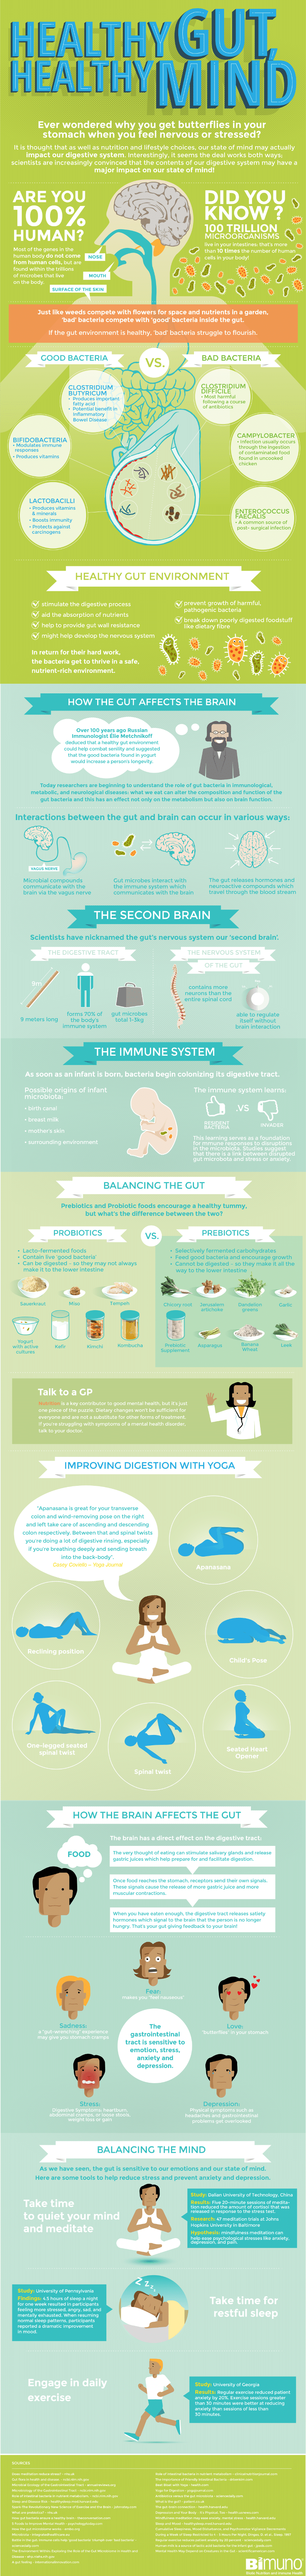 Healthy Gut Healthy Mind